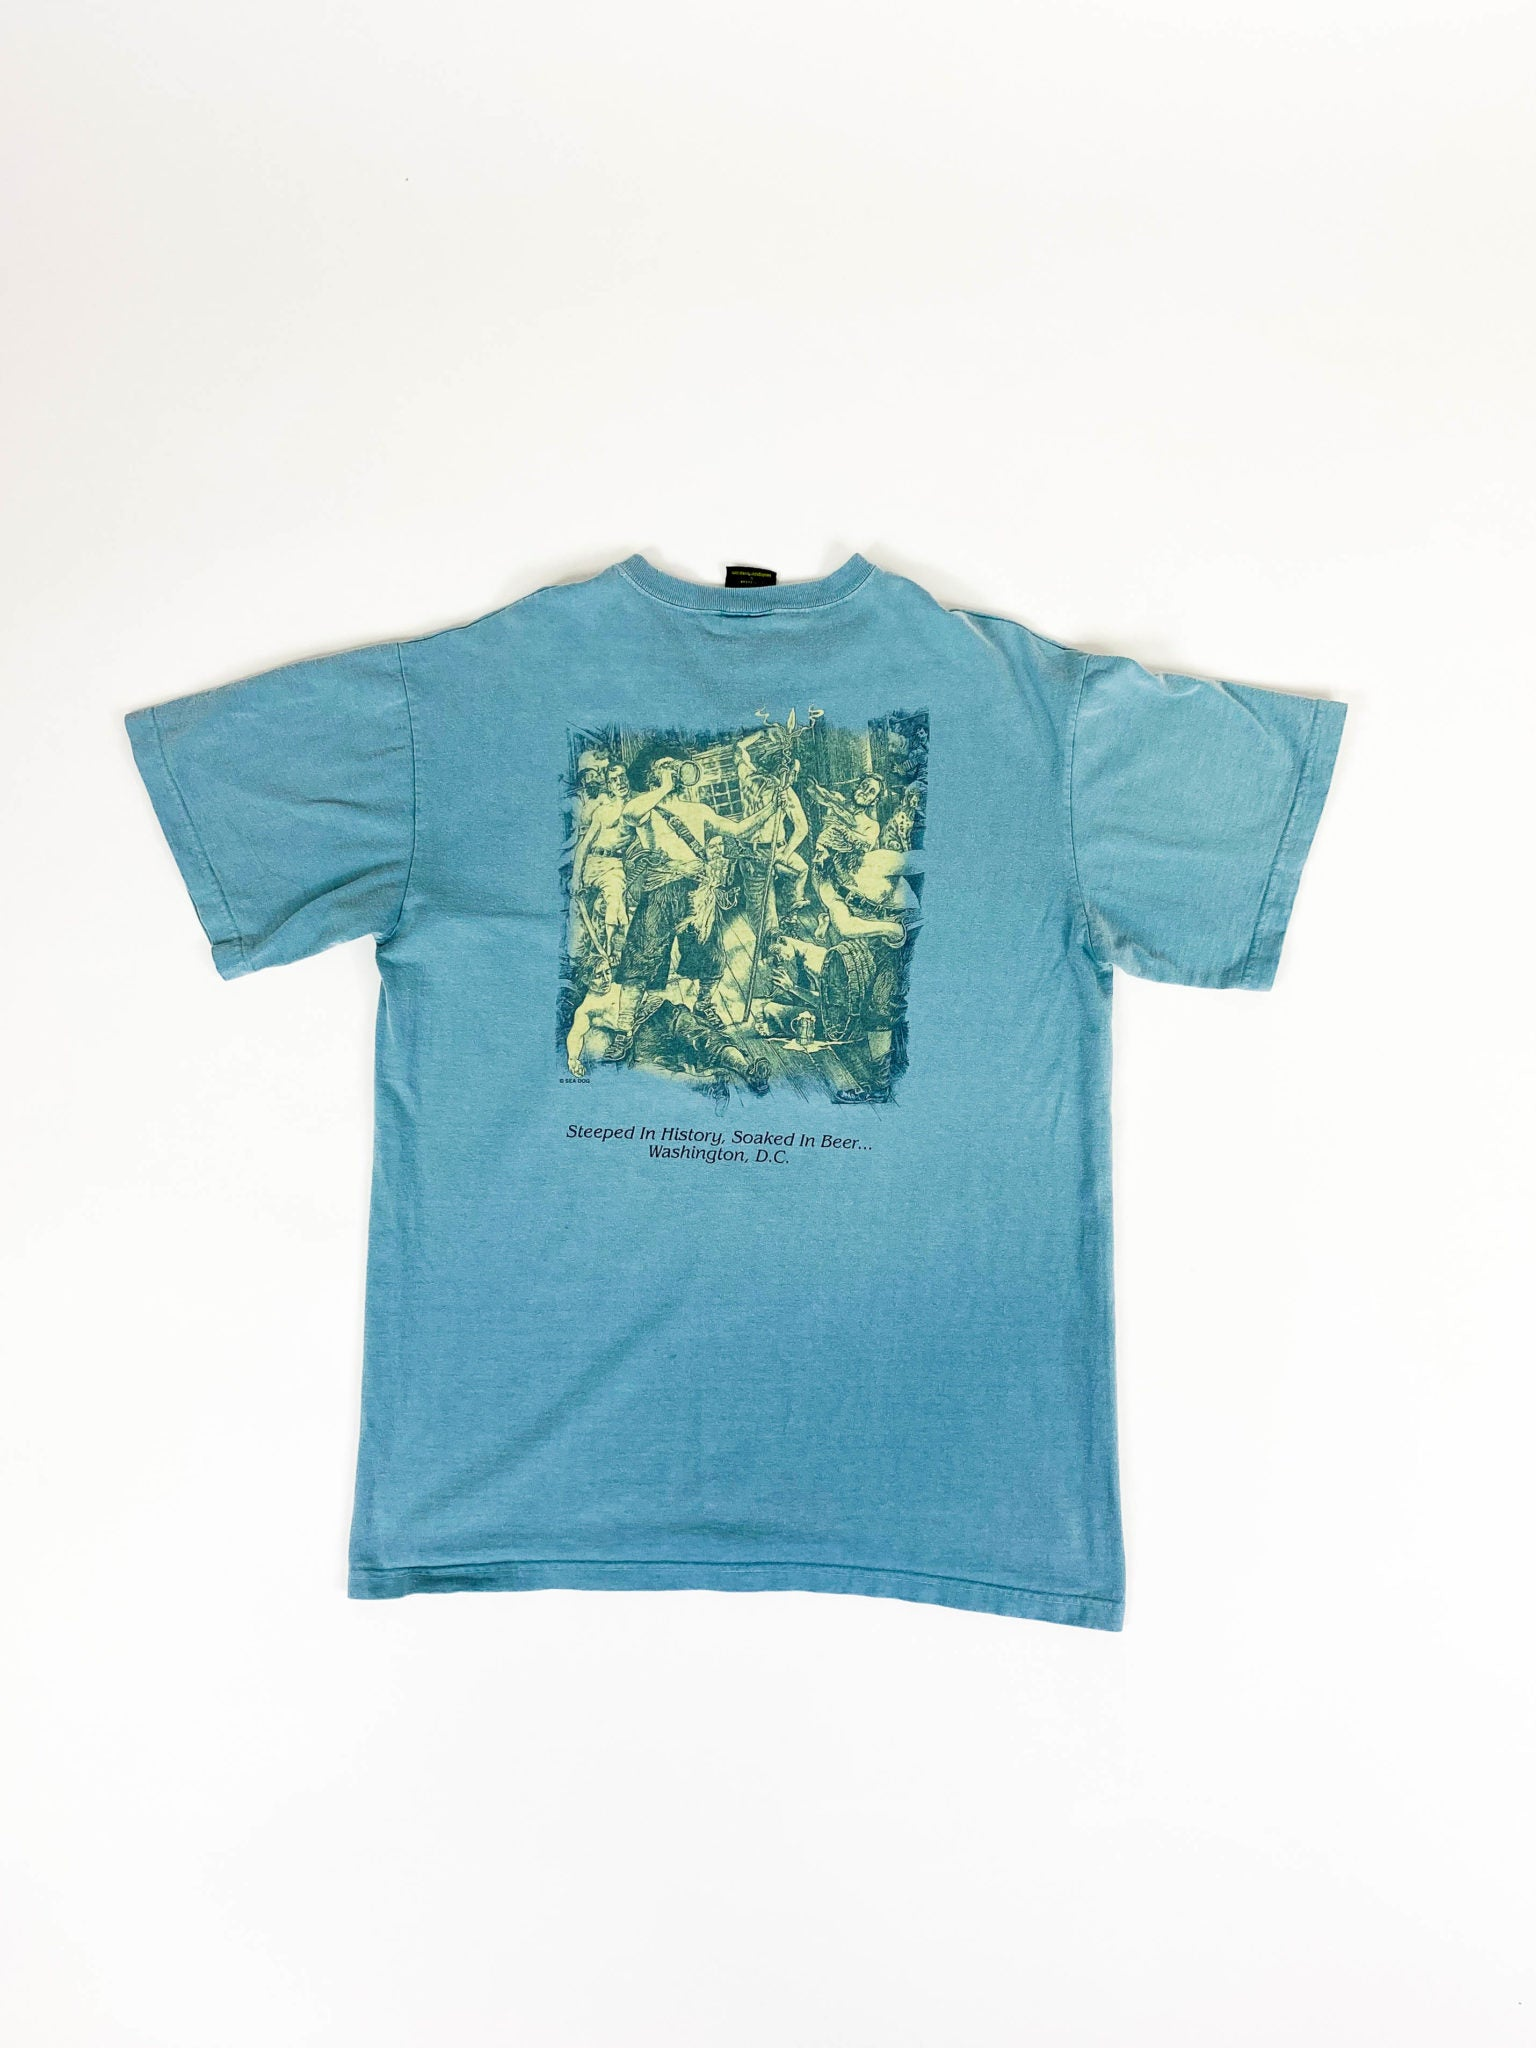 Vintage Sea Dog Tee / Size L